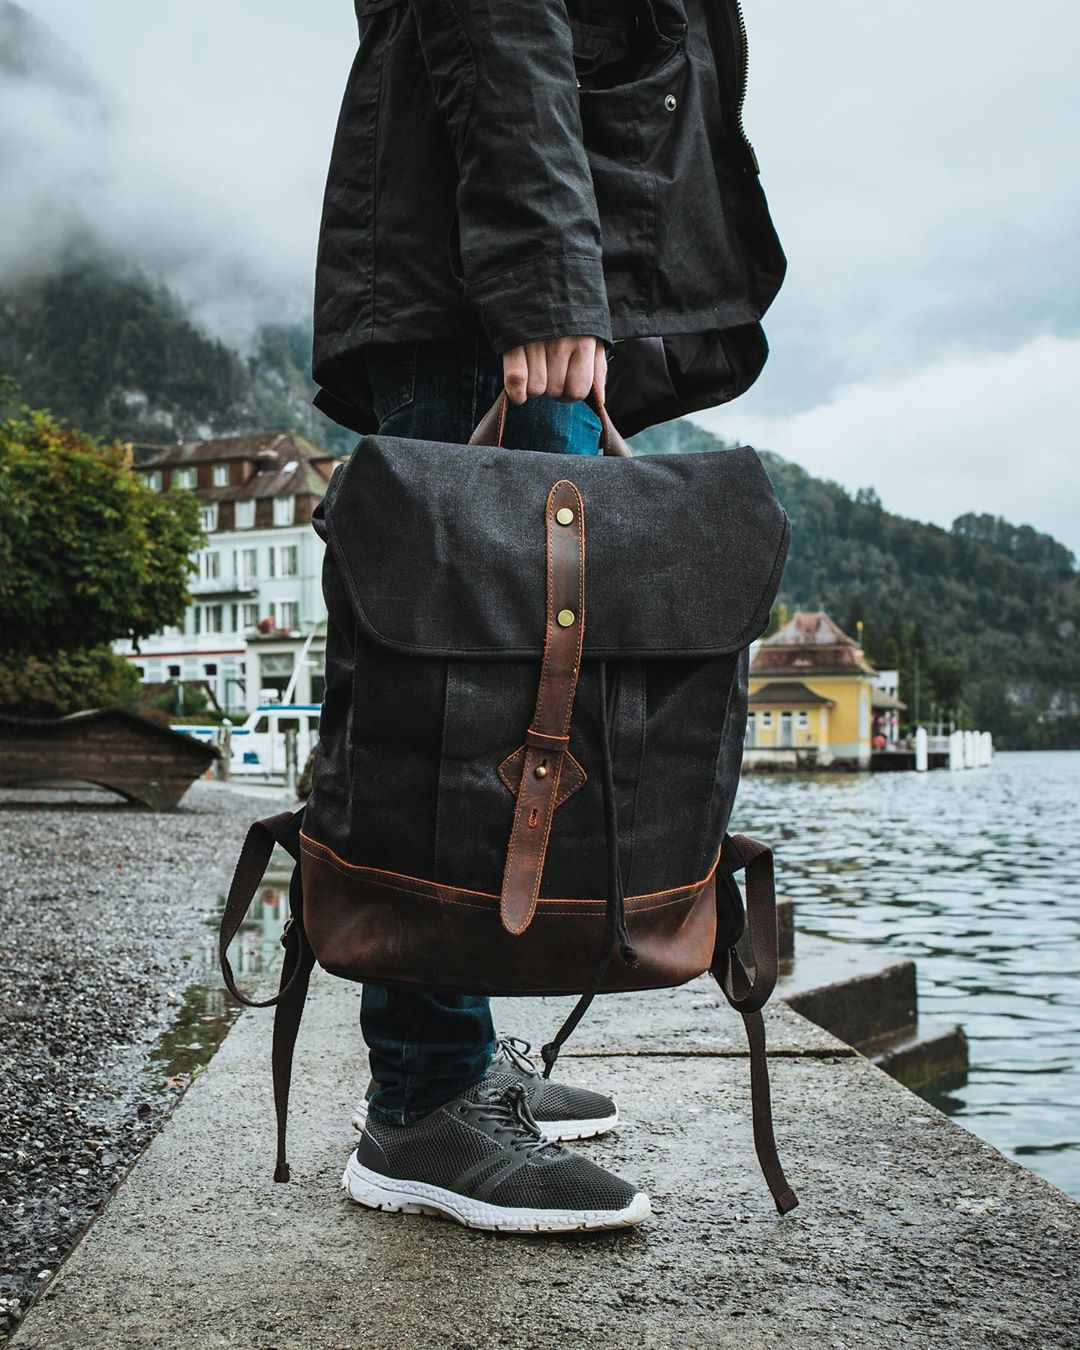 Waxed Cotton Canvas and Leather Backpack Rucksack - Menswear Denim Rugged Style Outfit Switzerland Rhône Glacier - The Kingston in Graphite by Oldfield - Photo by Brad Newman